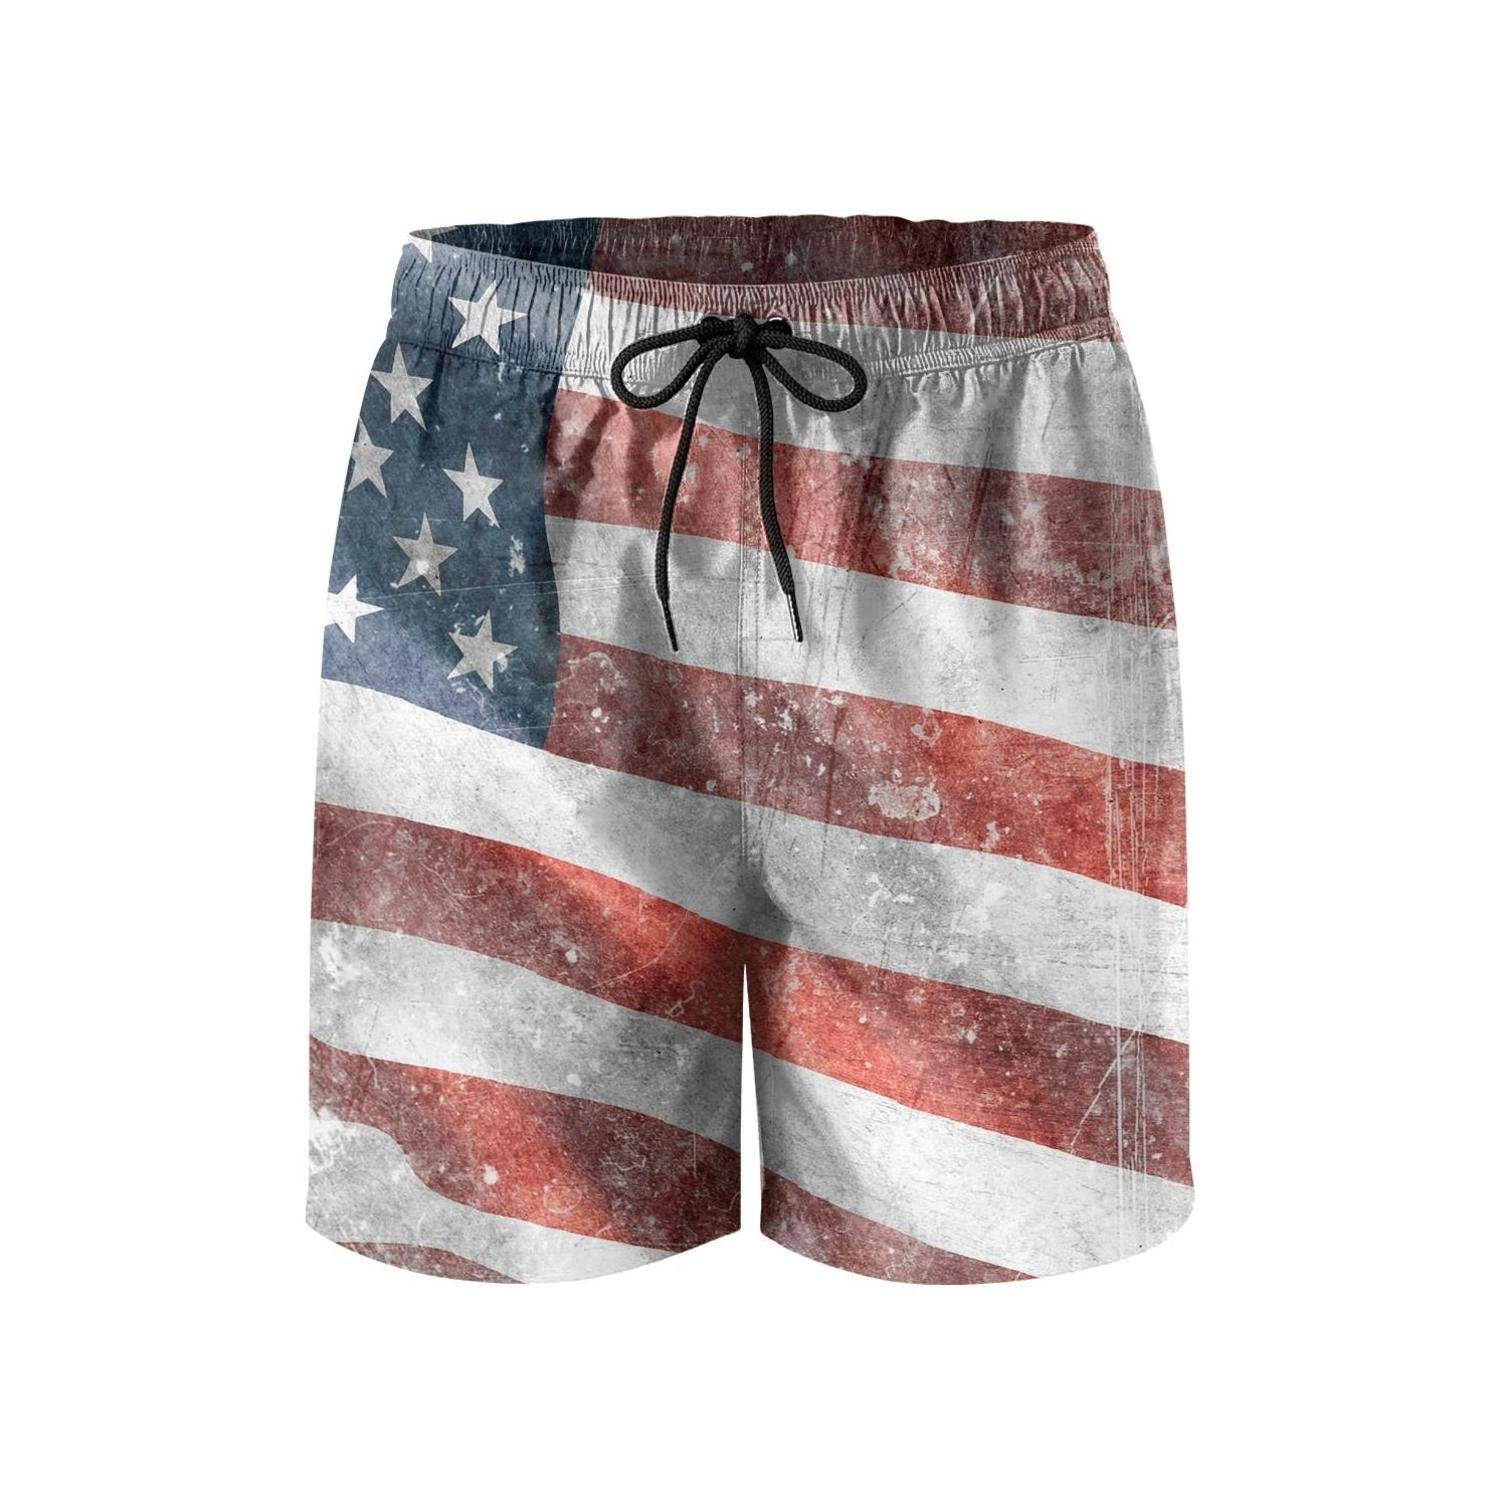 Staue of Liberty with American Flag Mens Swimming Trunks Beach Board Shorts Ruched Waterproof Sporty Short Pants Beachwear